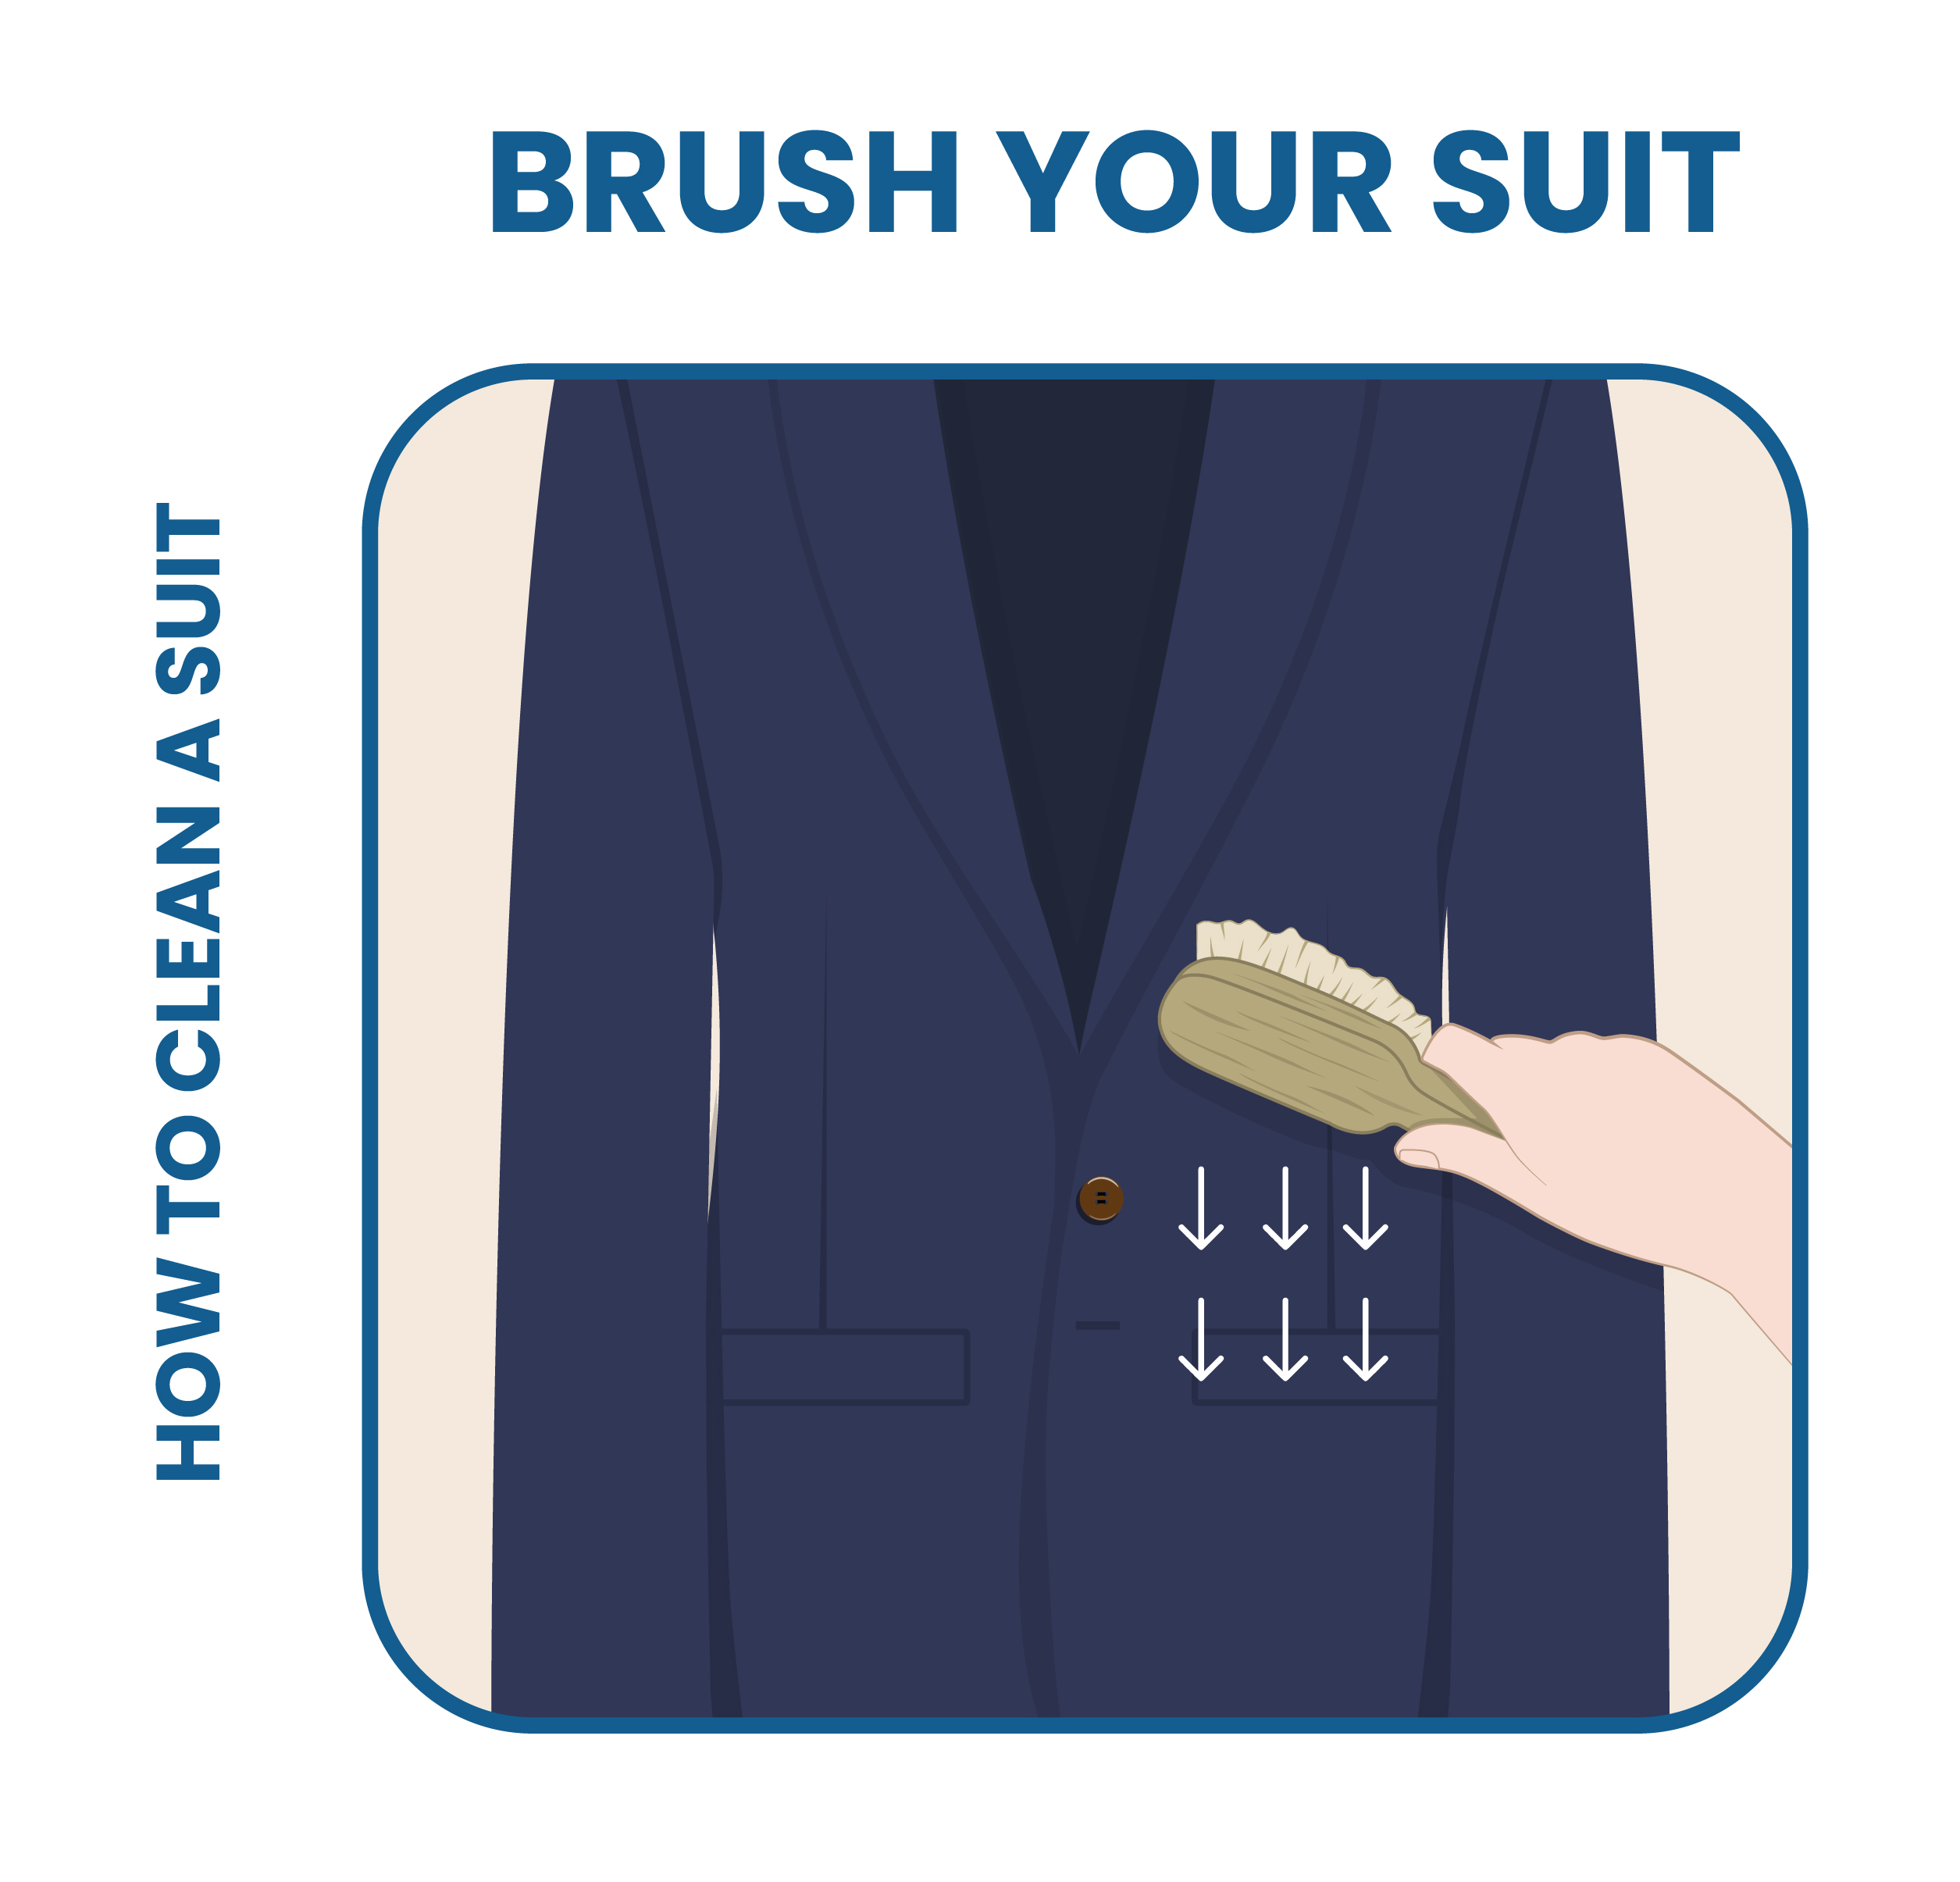 how to clean suit: use a suit brush